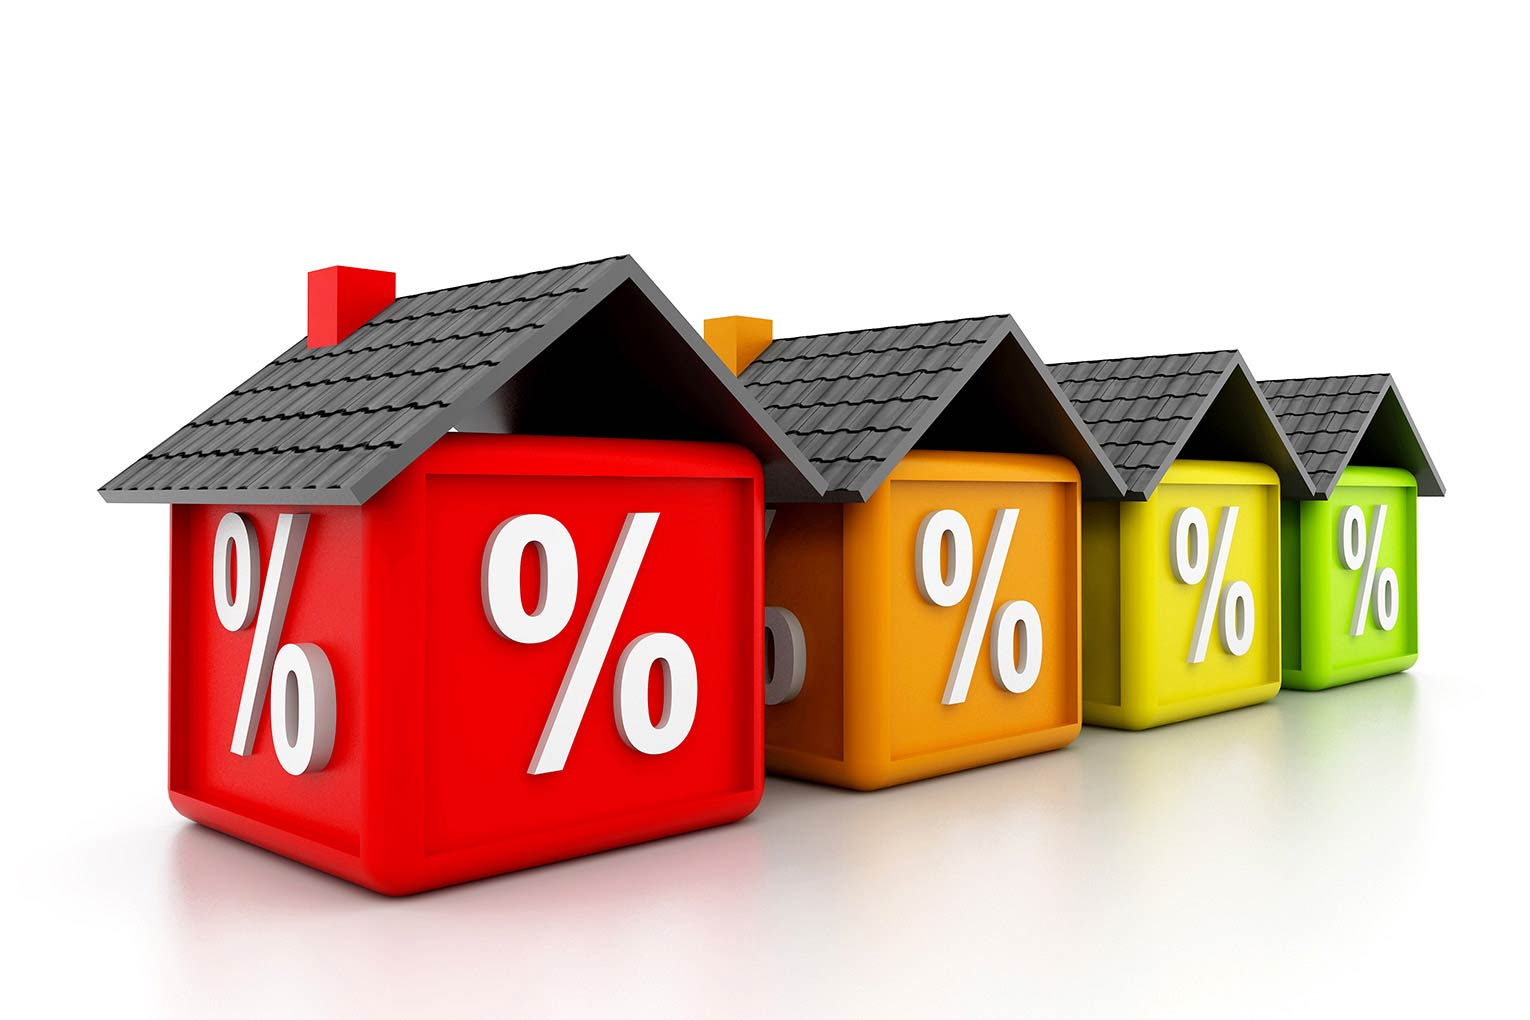 House price growth ticks up as expected in April - Nationwide